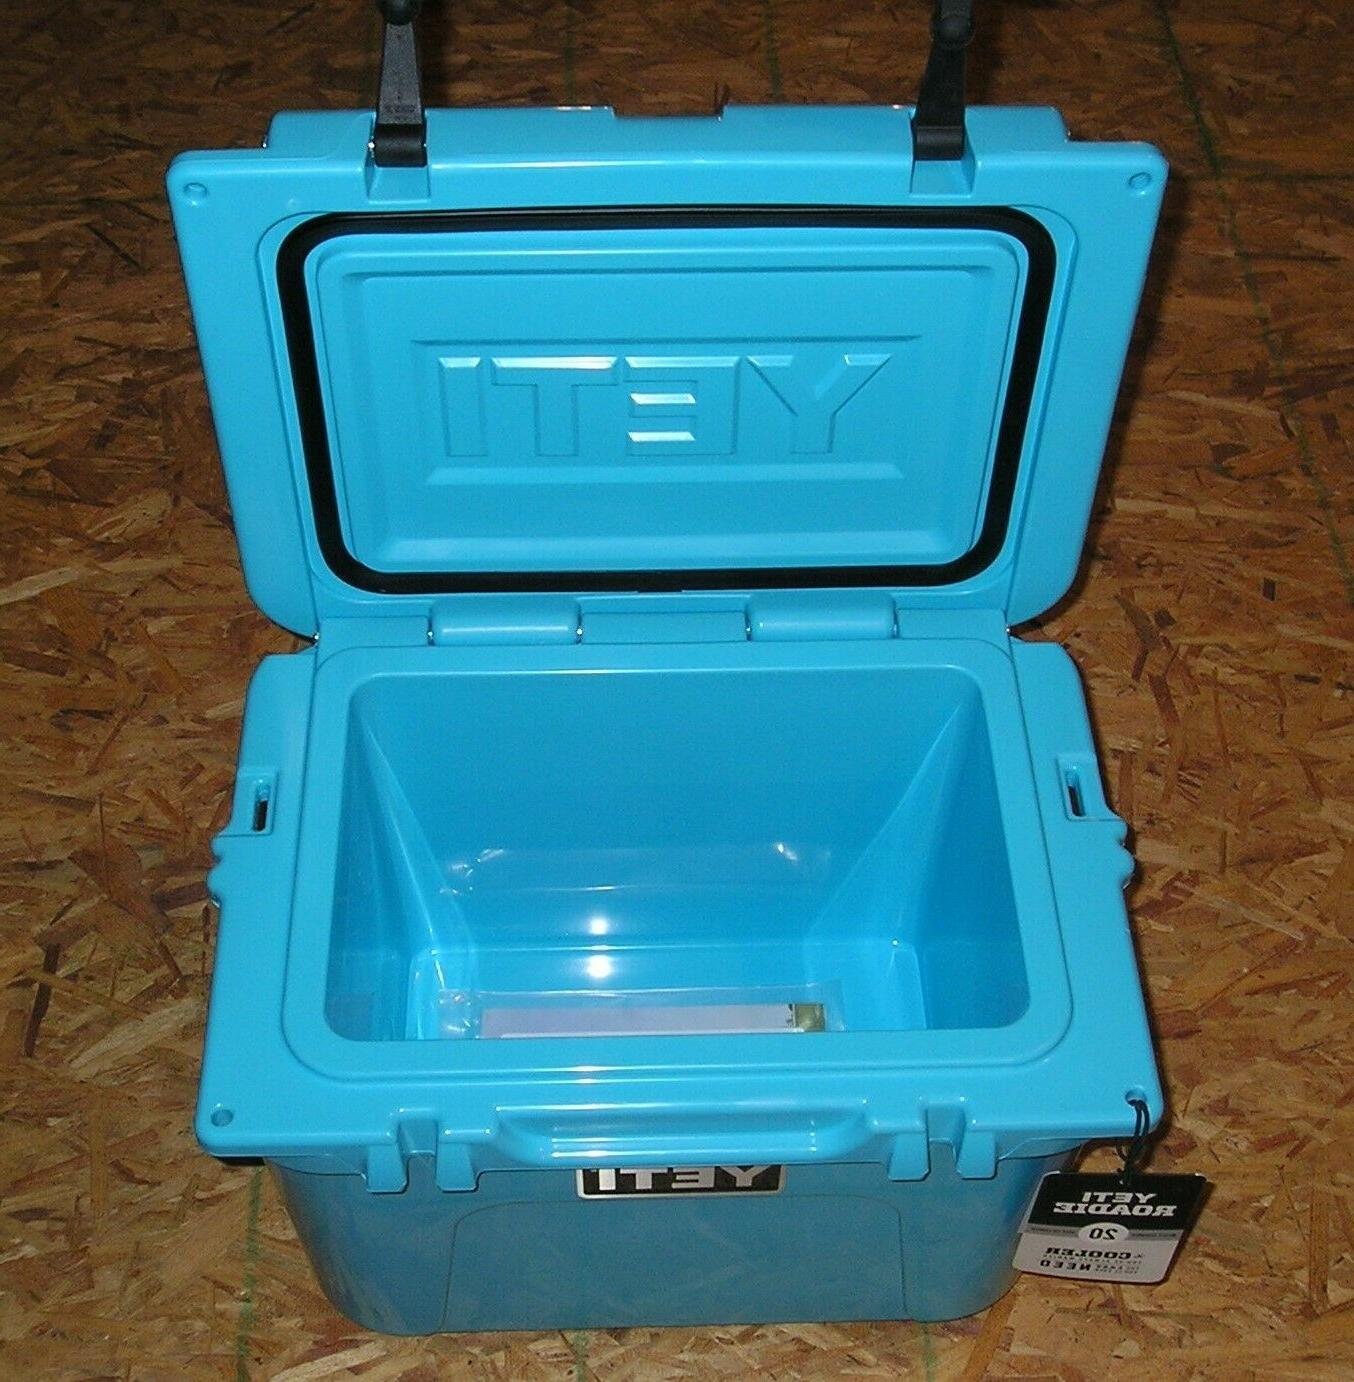 NEW YETI 20 COOLER OUT OF PRODUCTION